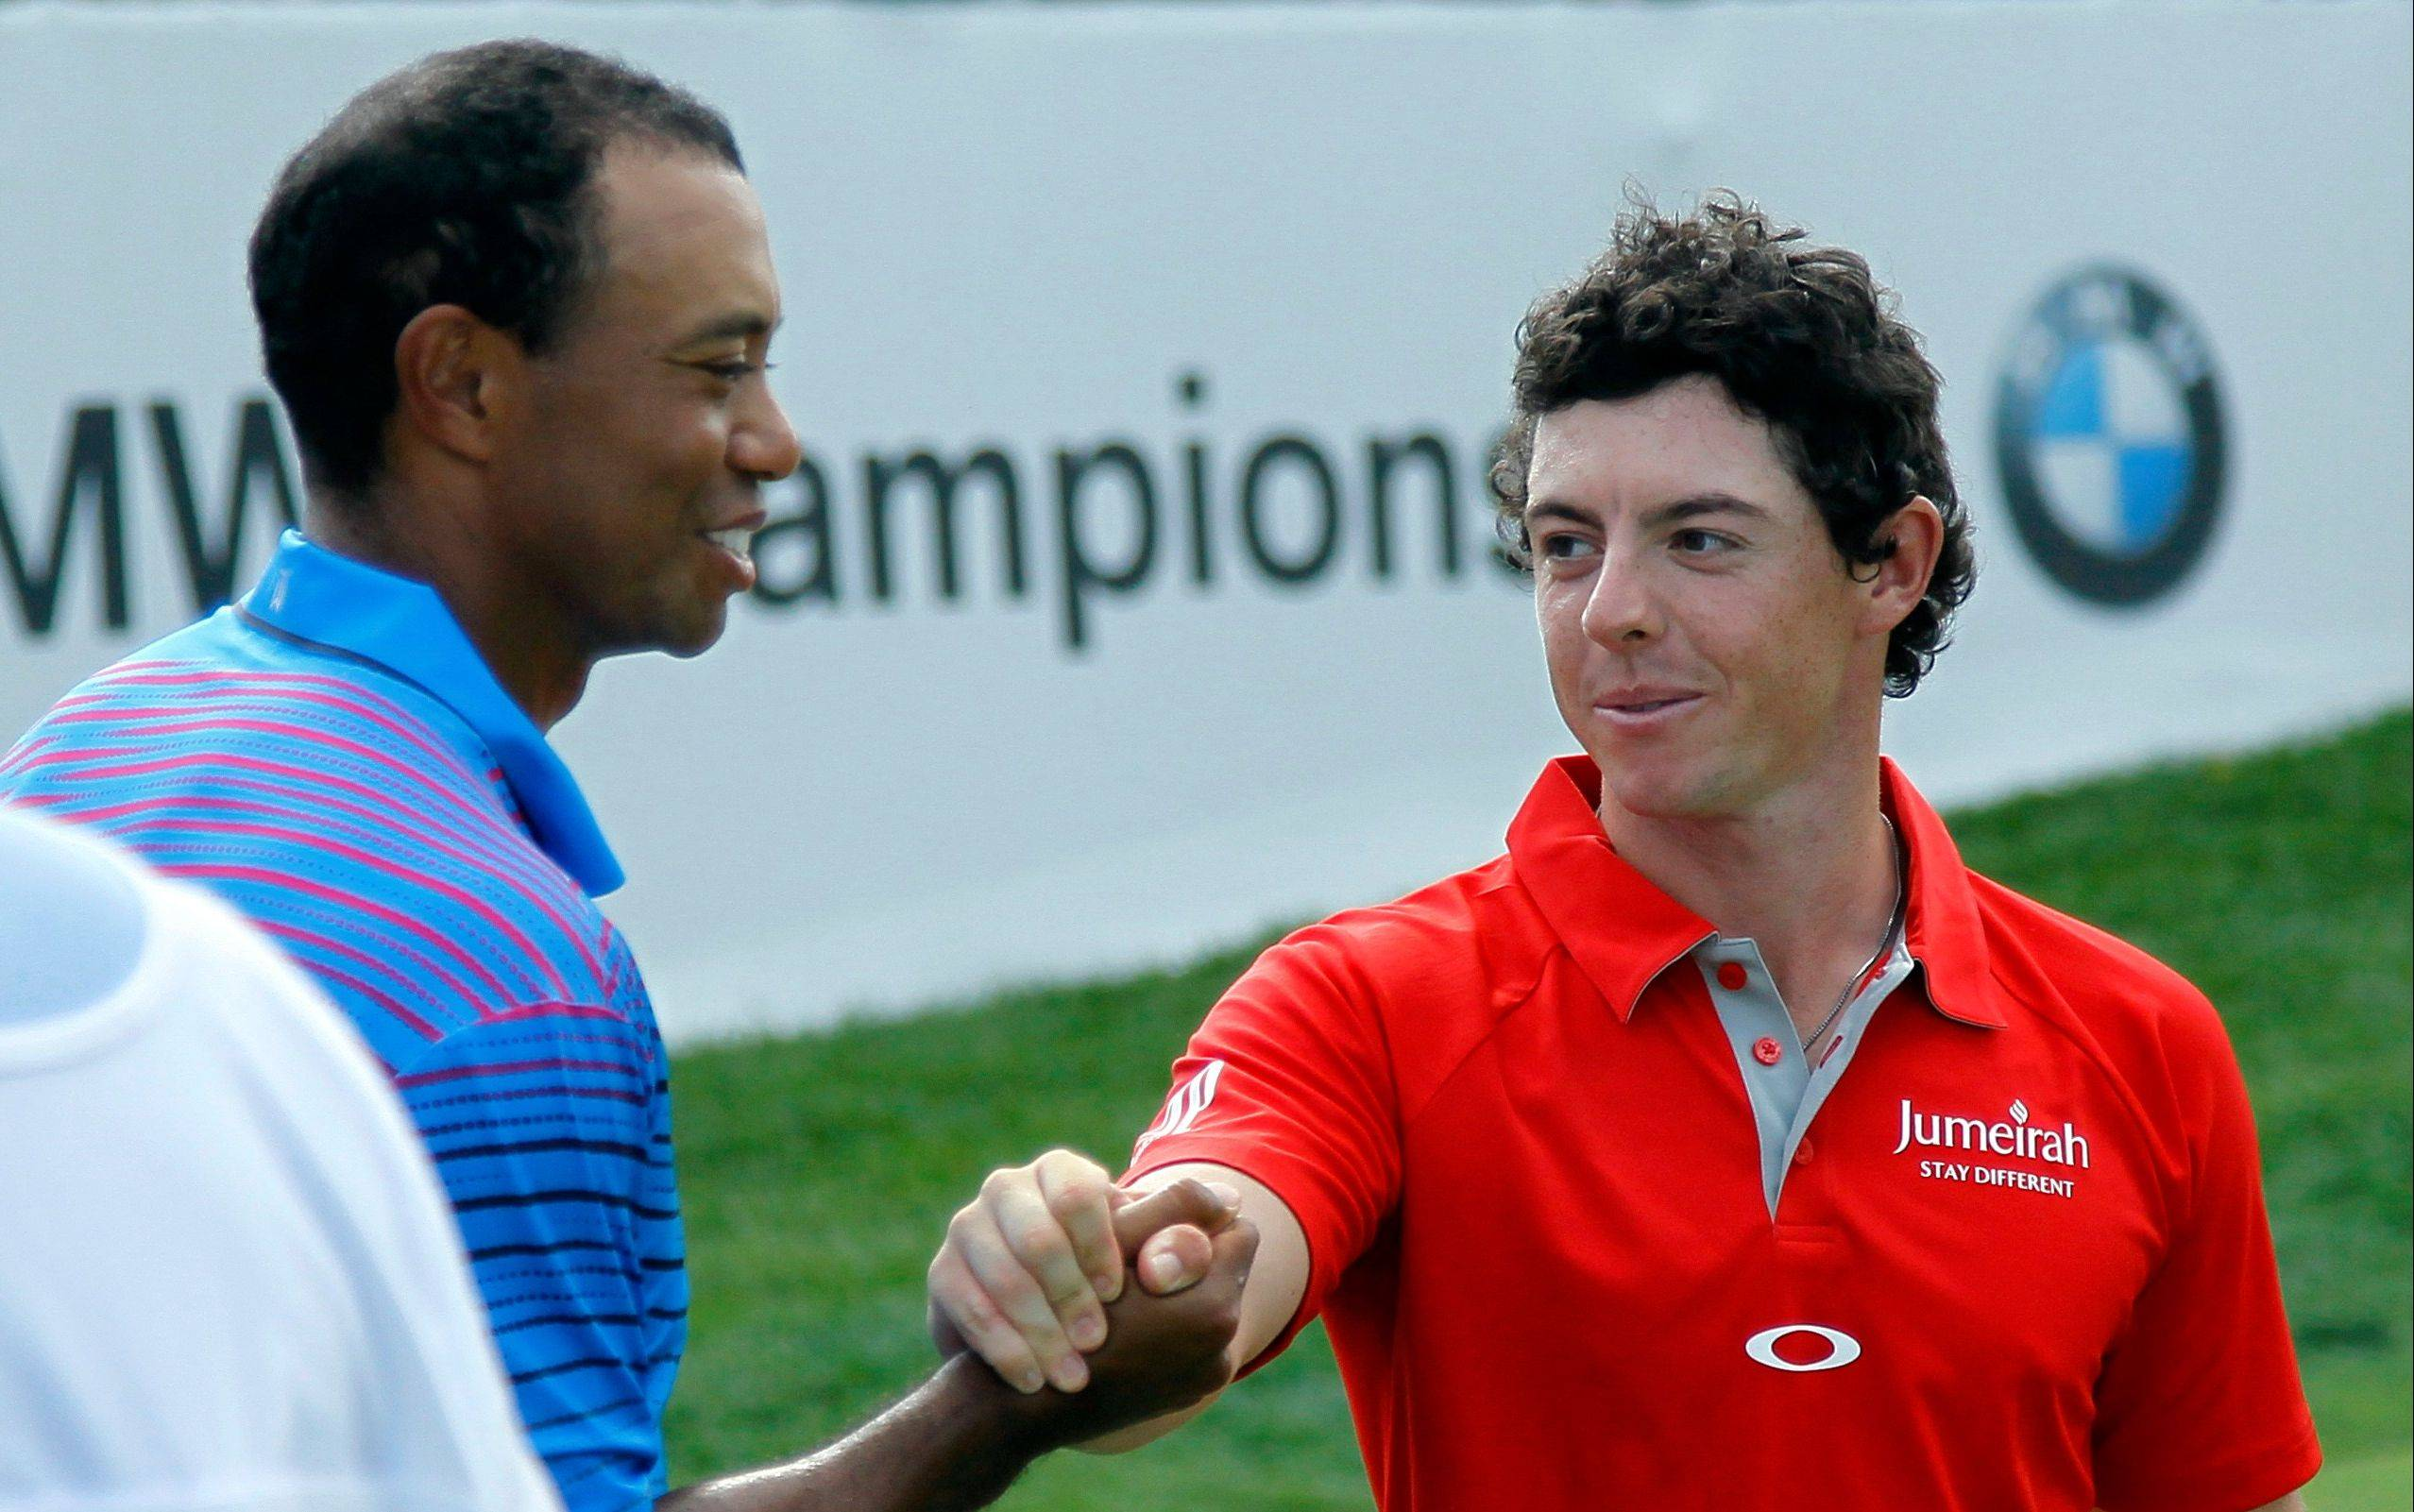 Tiger Woods paired against Rory McIlroy in the singles matches on the final day of the Ryder Cup this month at Medinah is the wish of Mike Spellman.